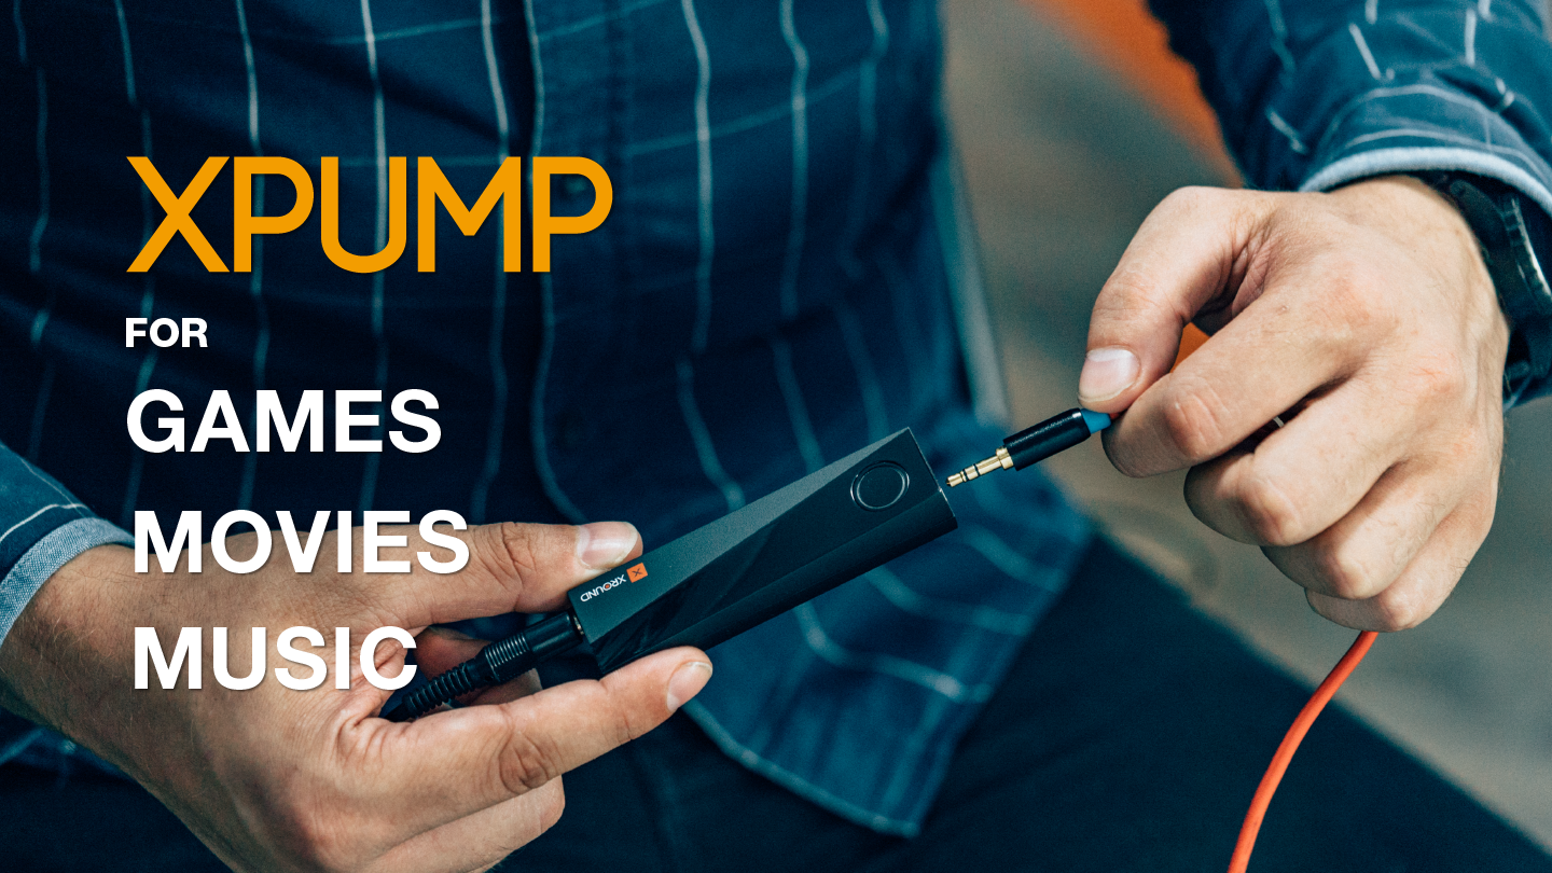 XPUMP unleashes immersive sound with the touch of your fingertips. Hear the difference.